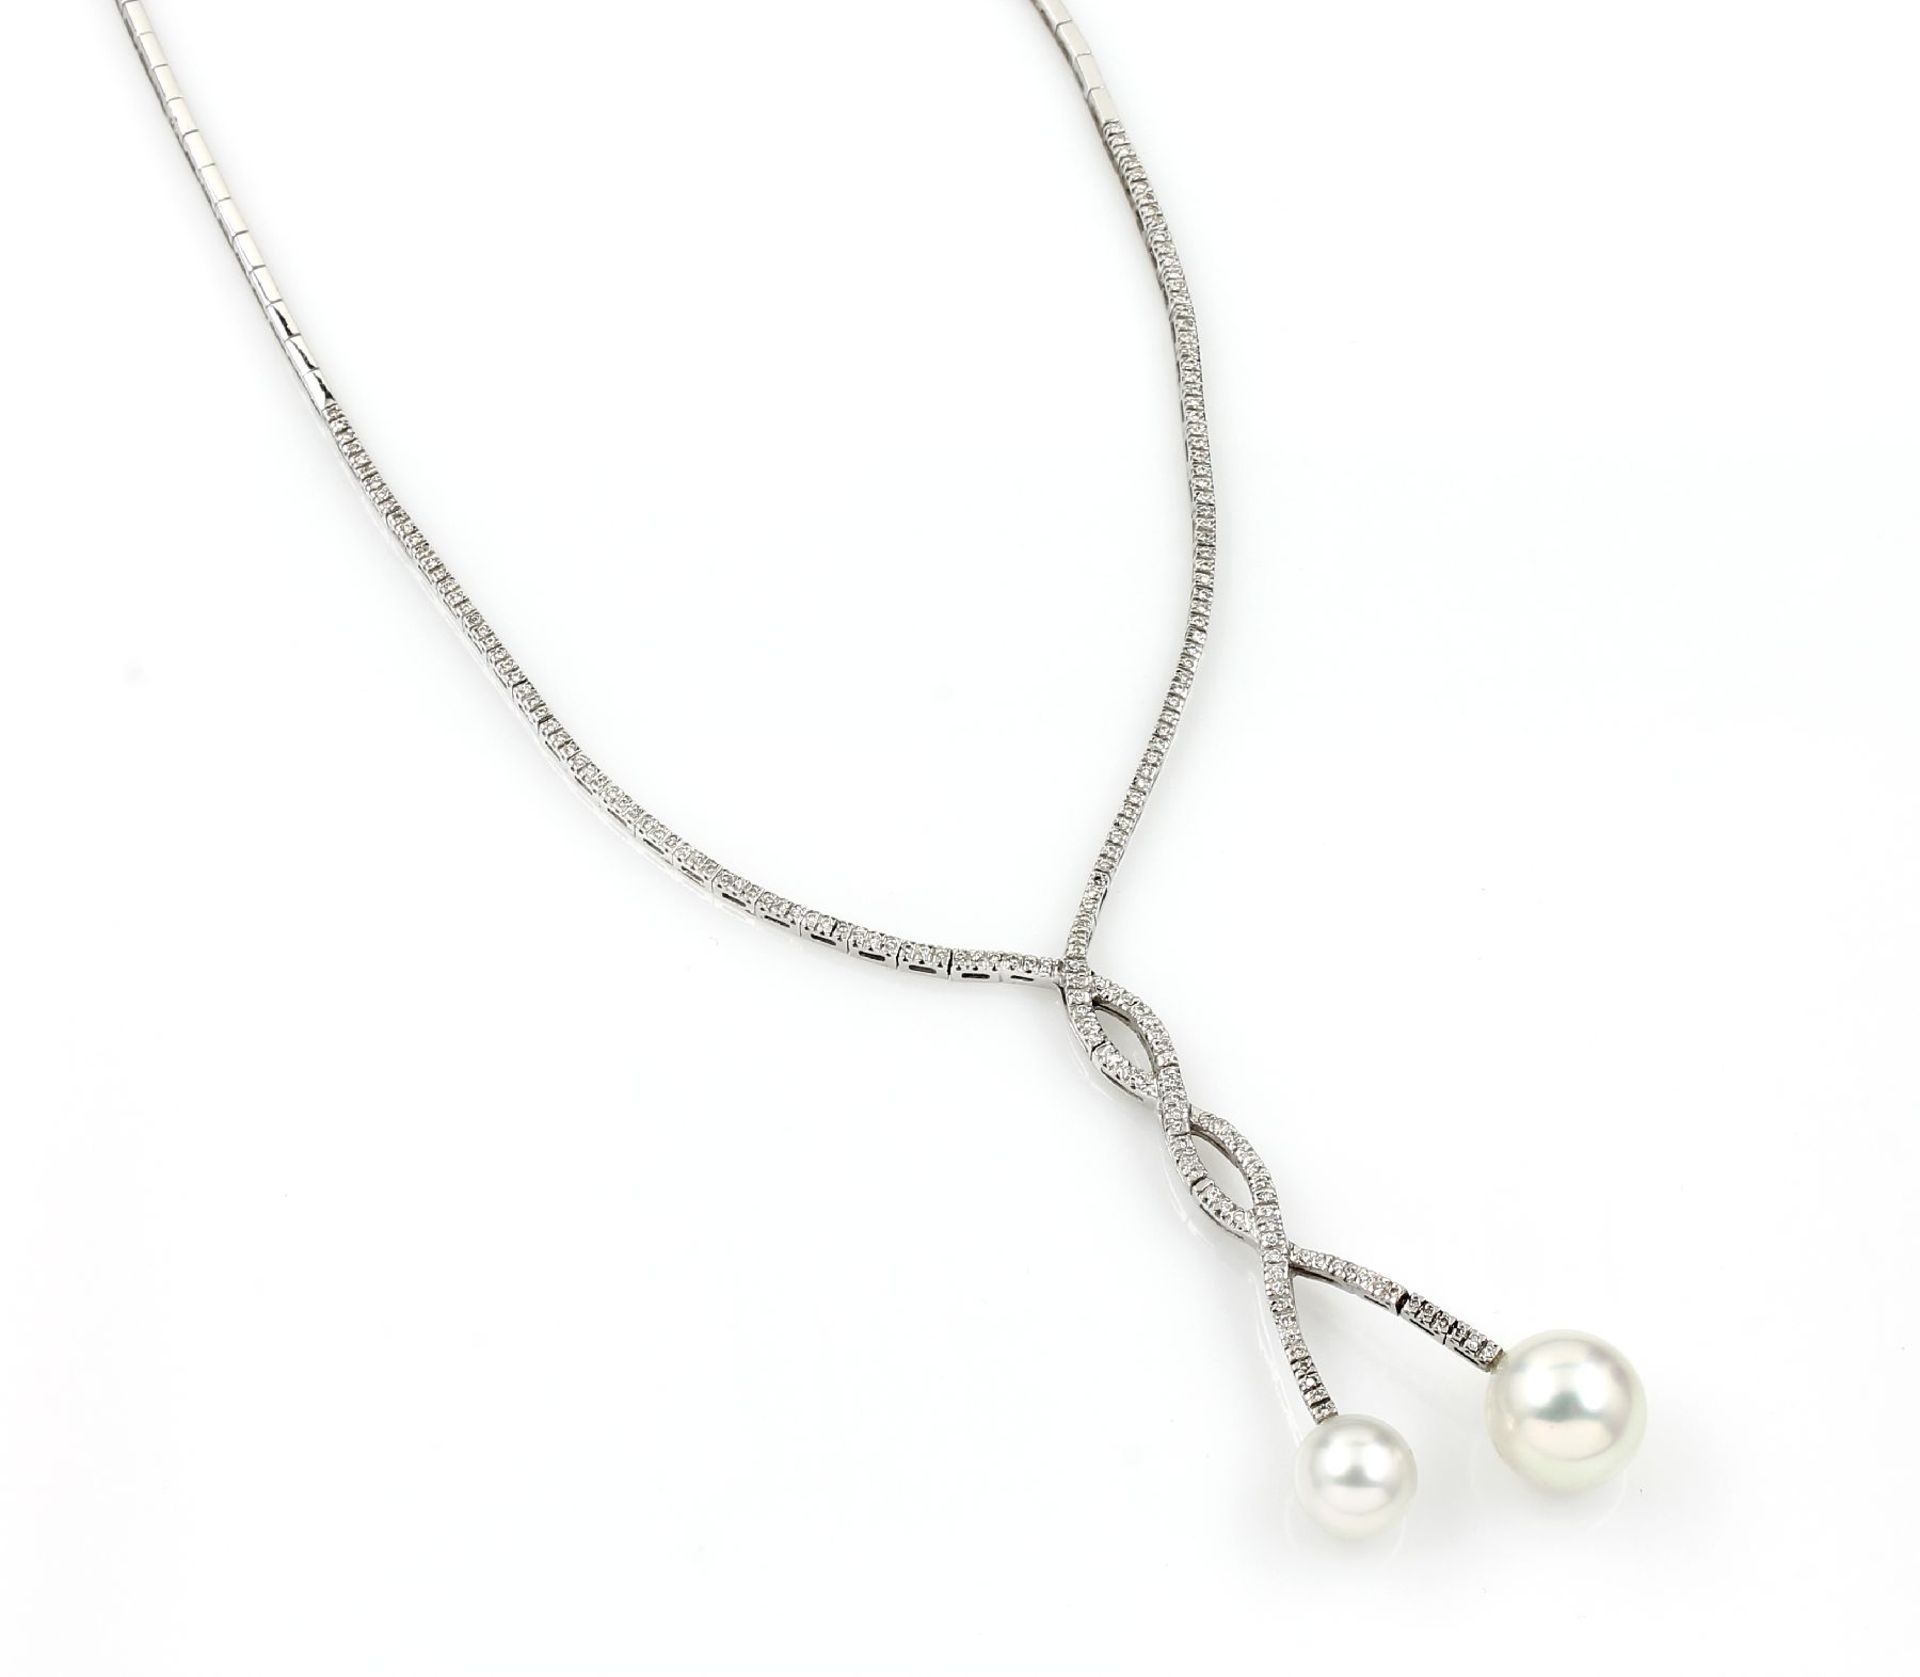 Los 31535 - 18 kt gold necklace with brilliants and south seas pearls , WG 750/000, diamonds total approx. 2.